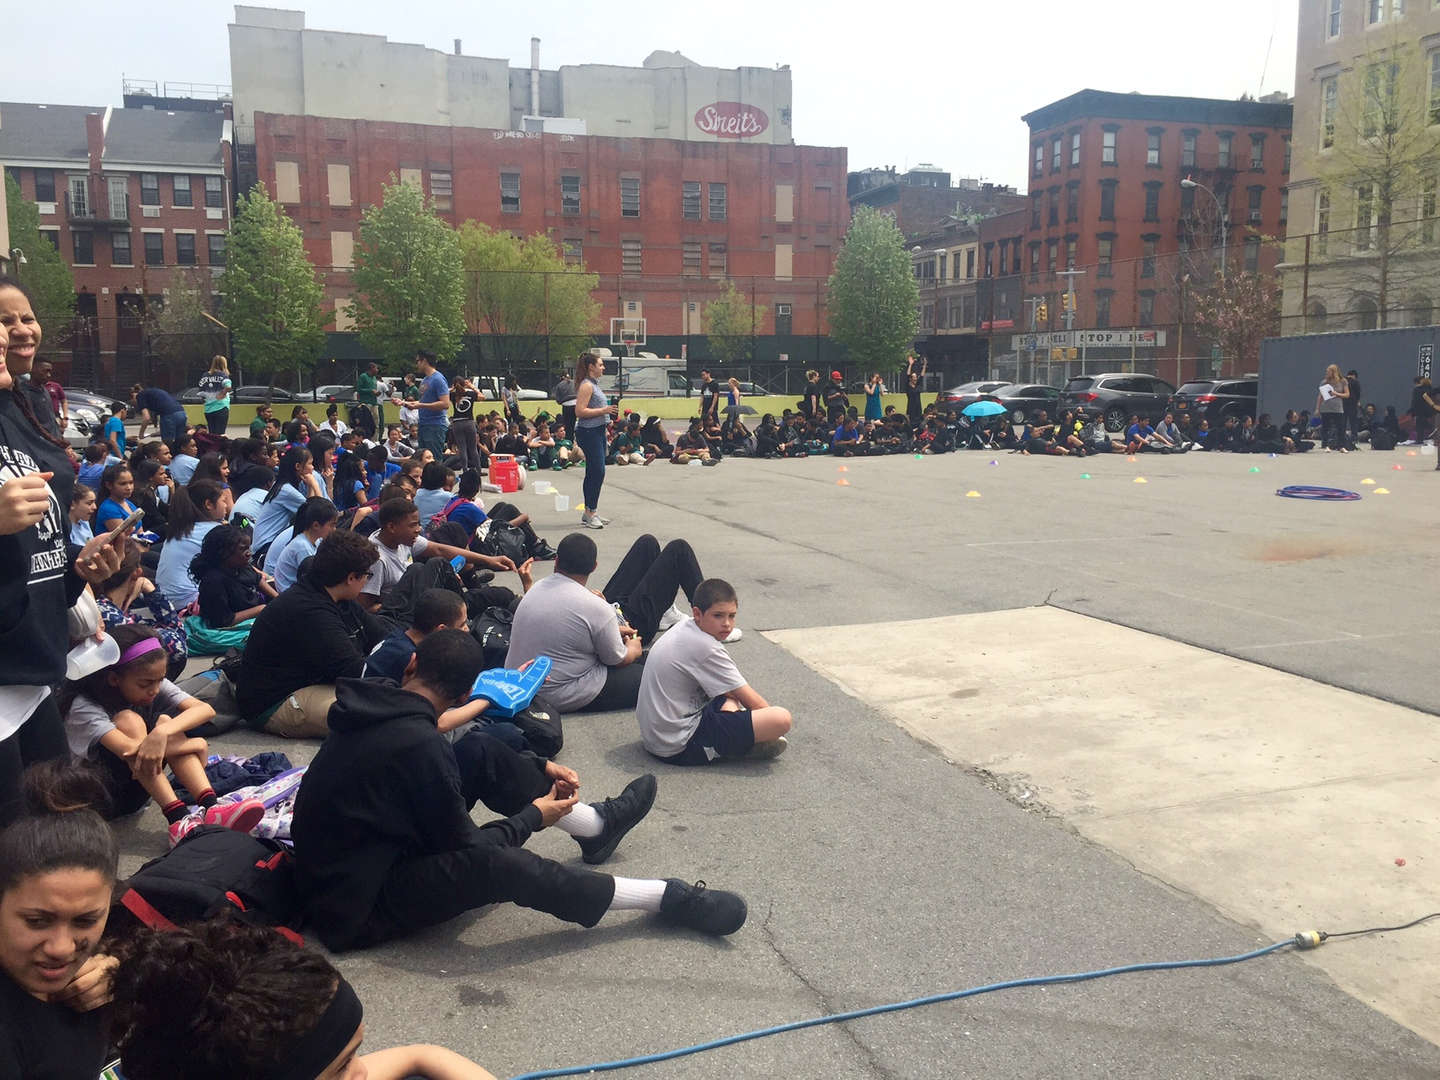 Students sitting down in school yard.